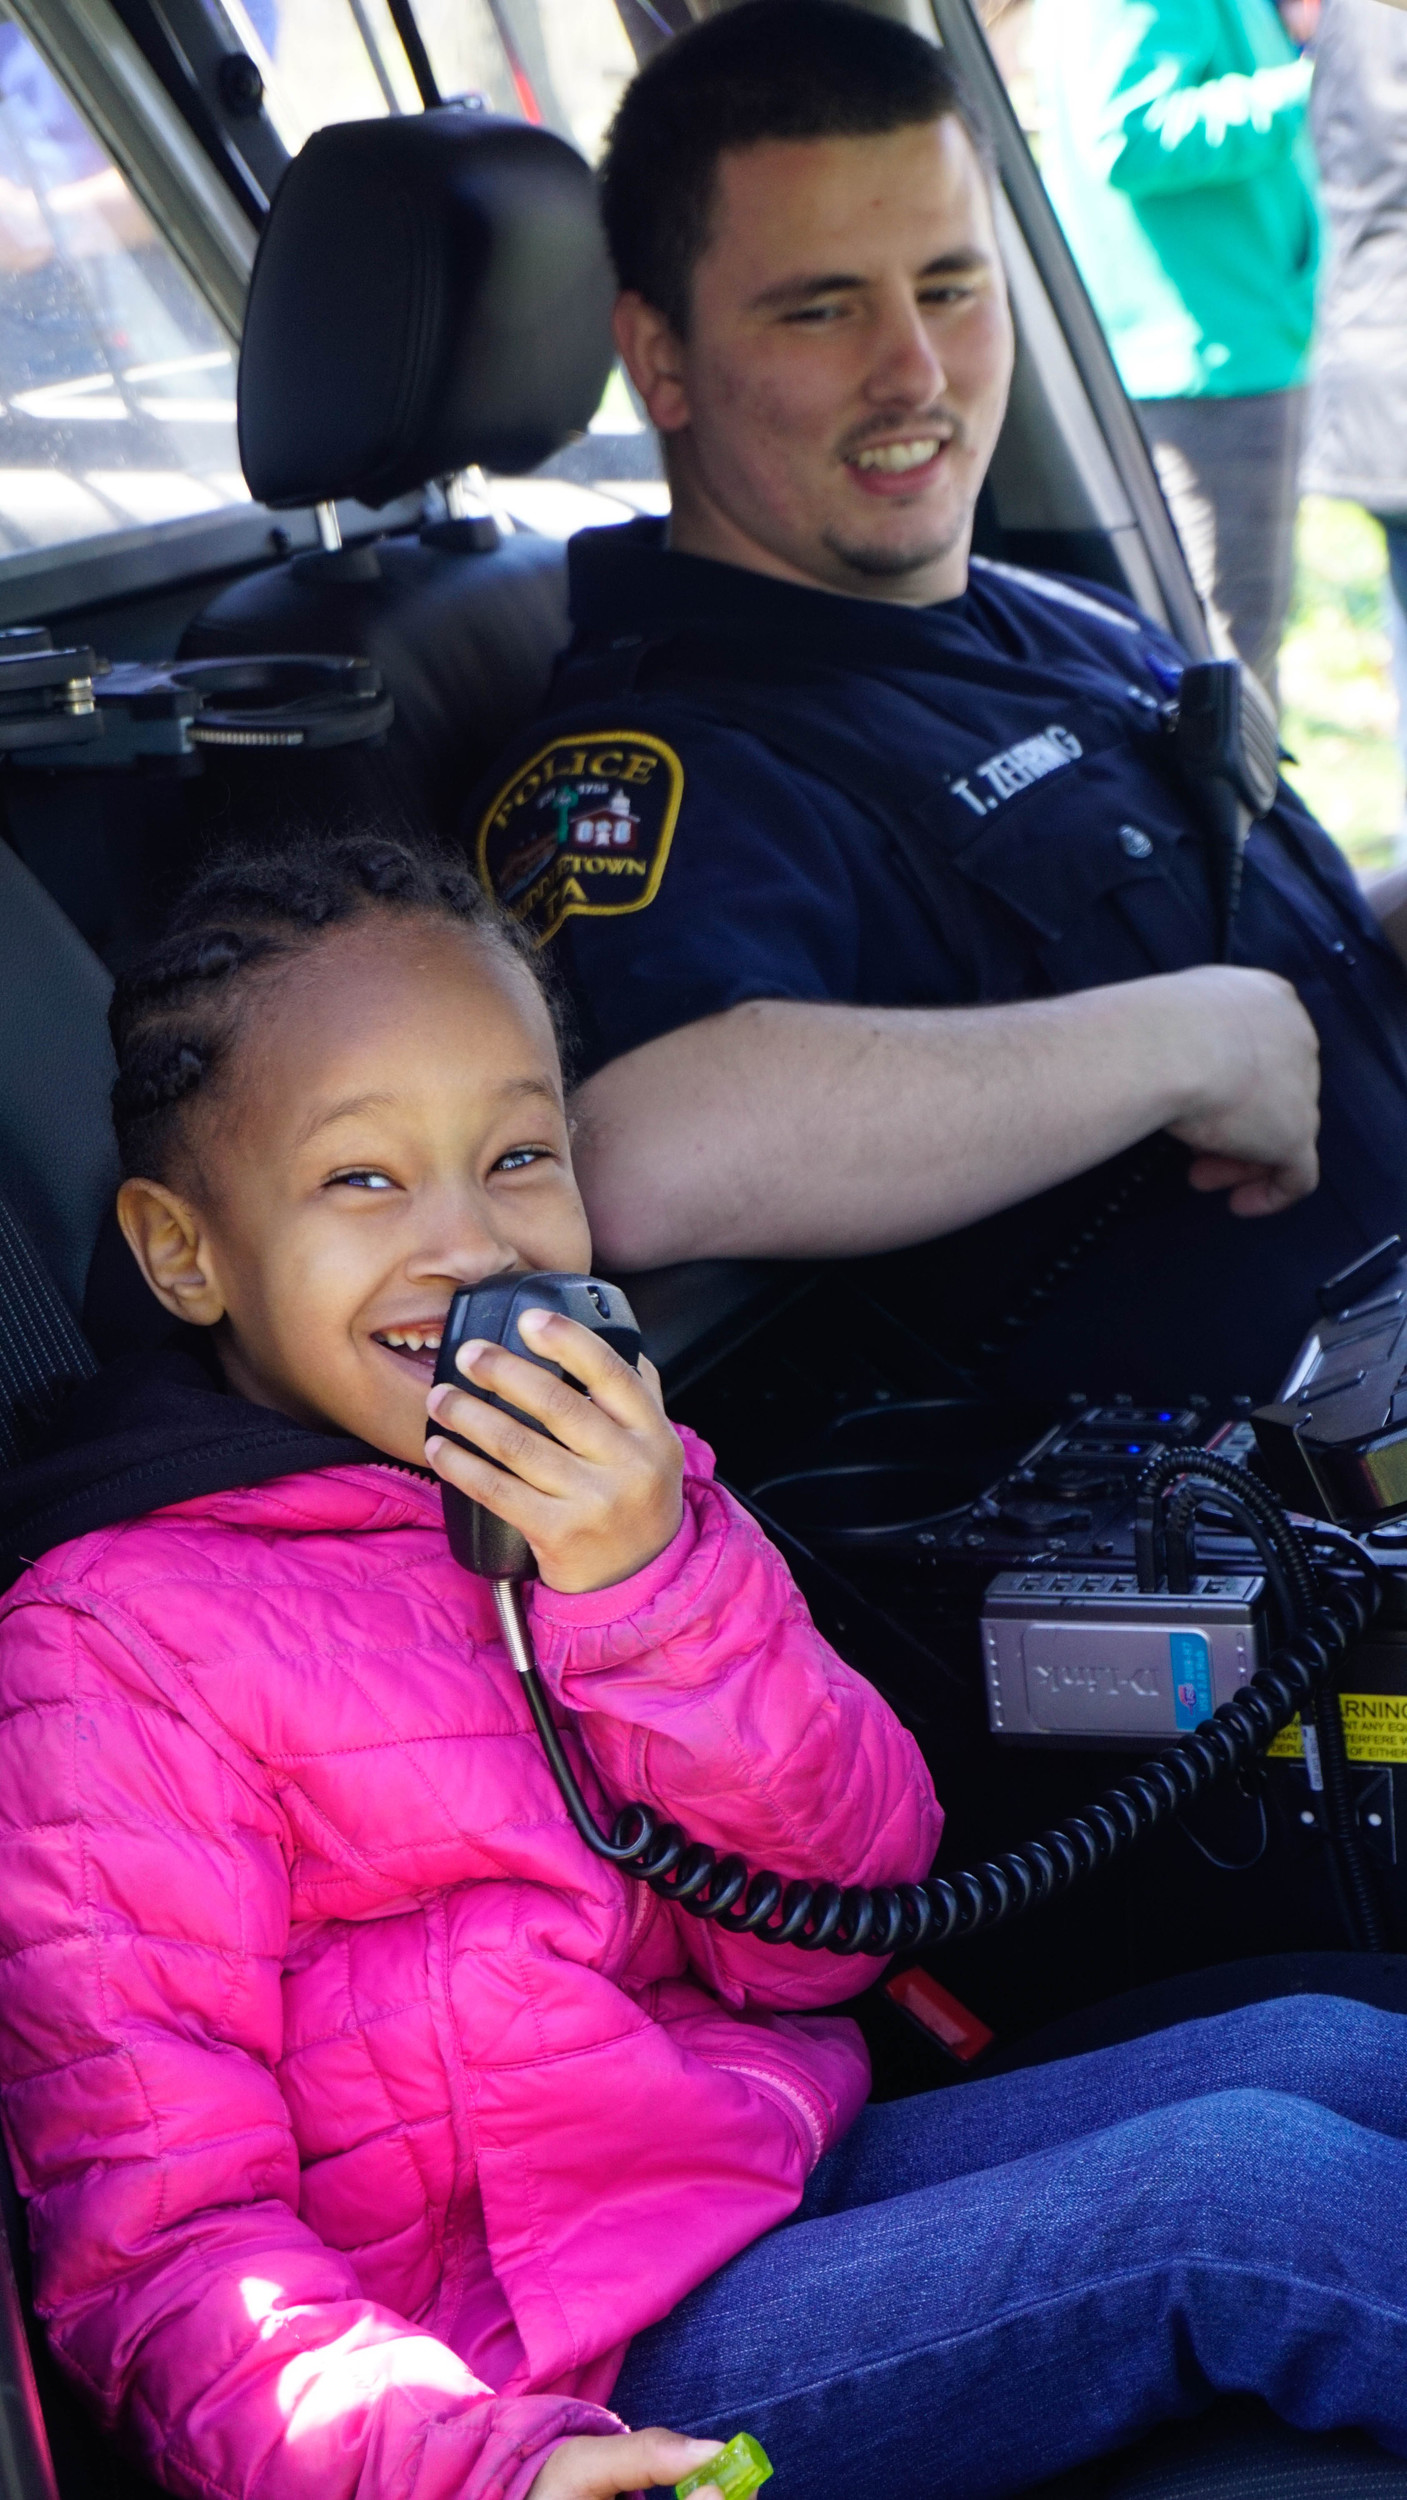 Samantha Mouchette, daughter of Interim Police Chief George Mouchette, uses the intercom in a police cruiser. Officer Tyler Zehring watches.